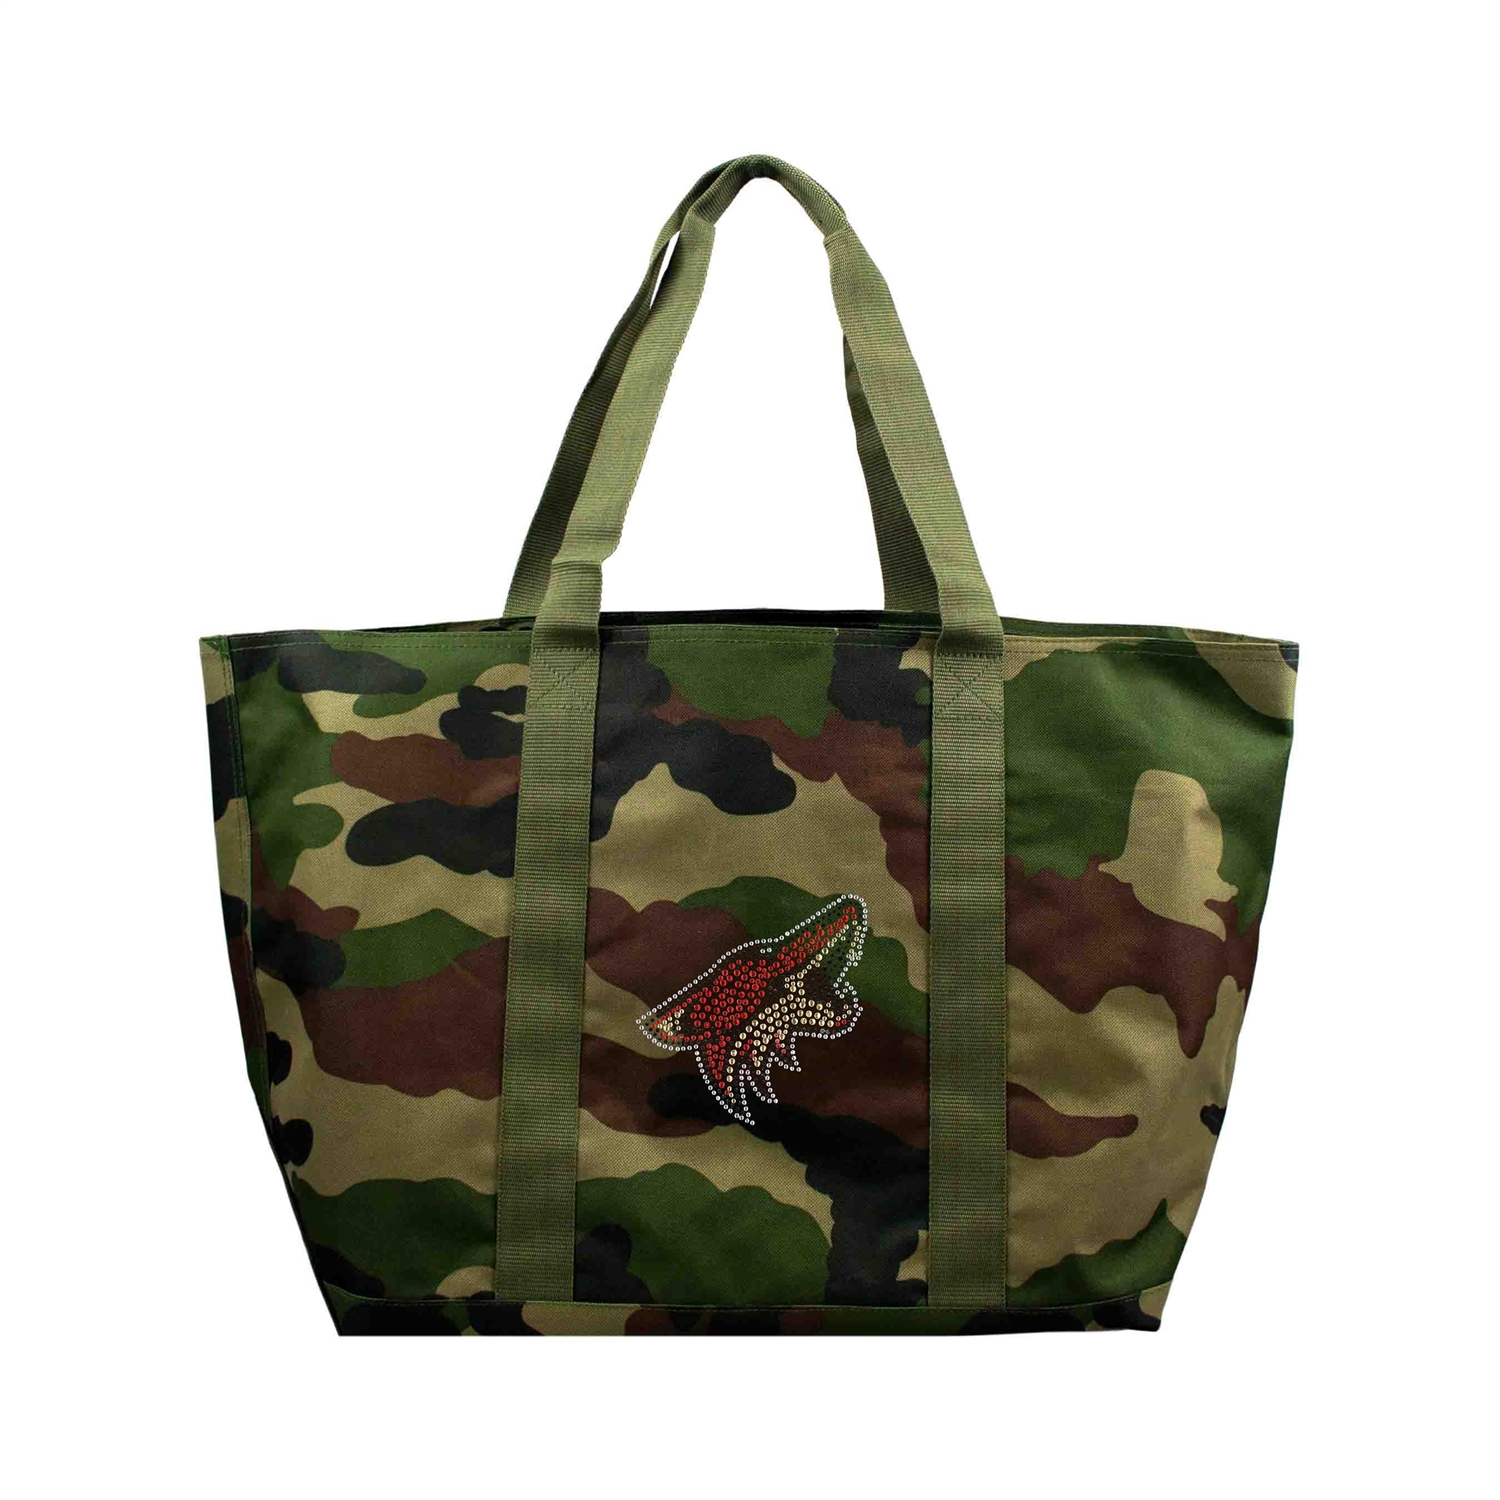 Soccer Soccer Goals Steel Utility Goals - 551010-coyt - Arizona Coyotes Camo Tote 551010-COYT